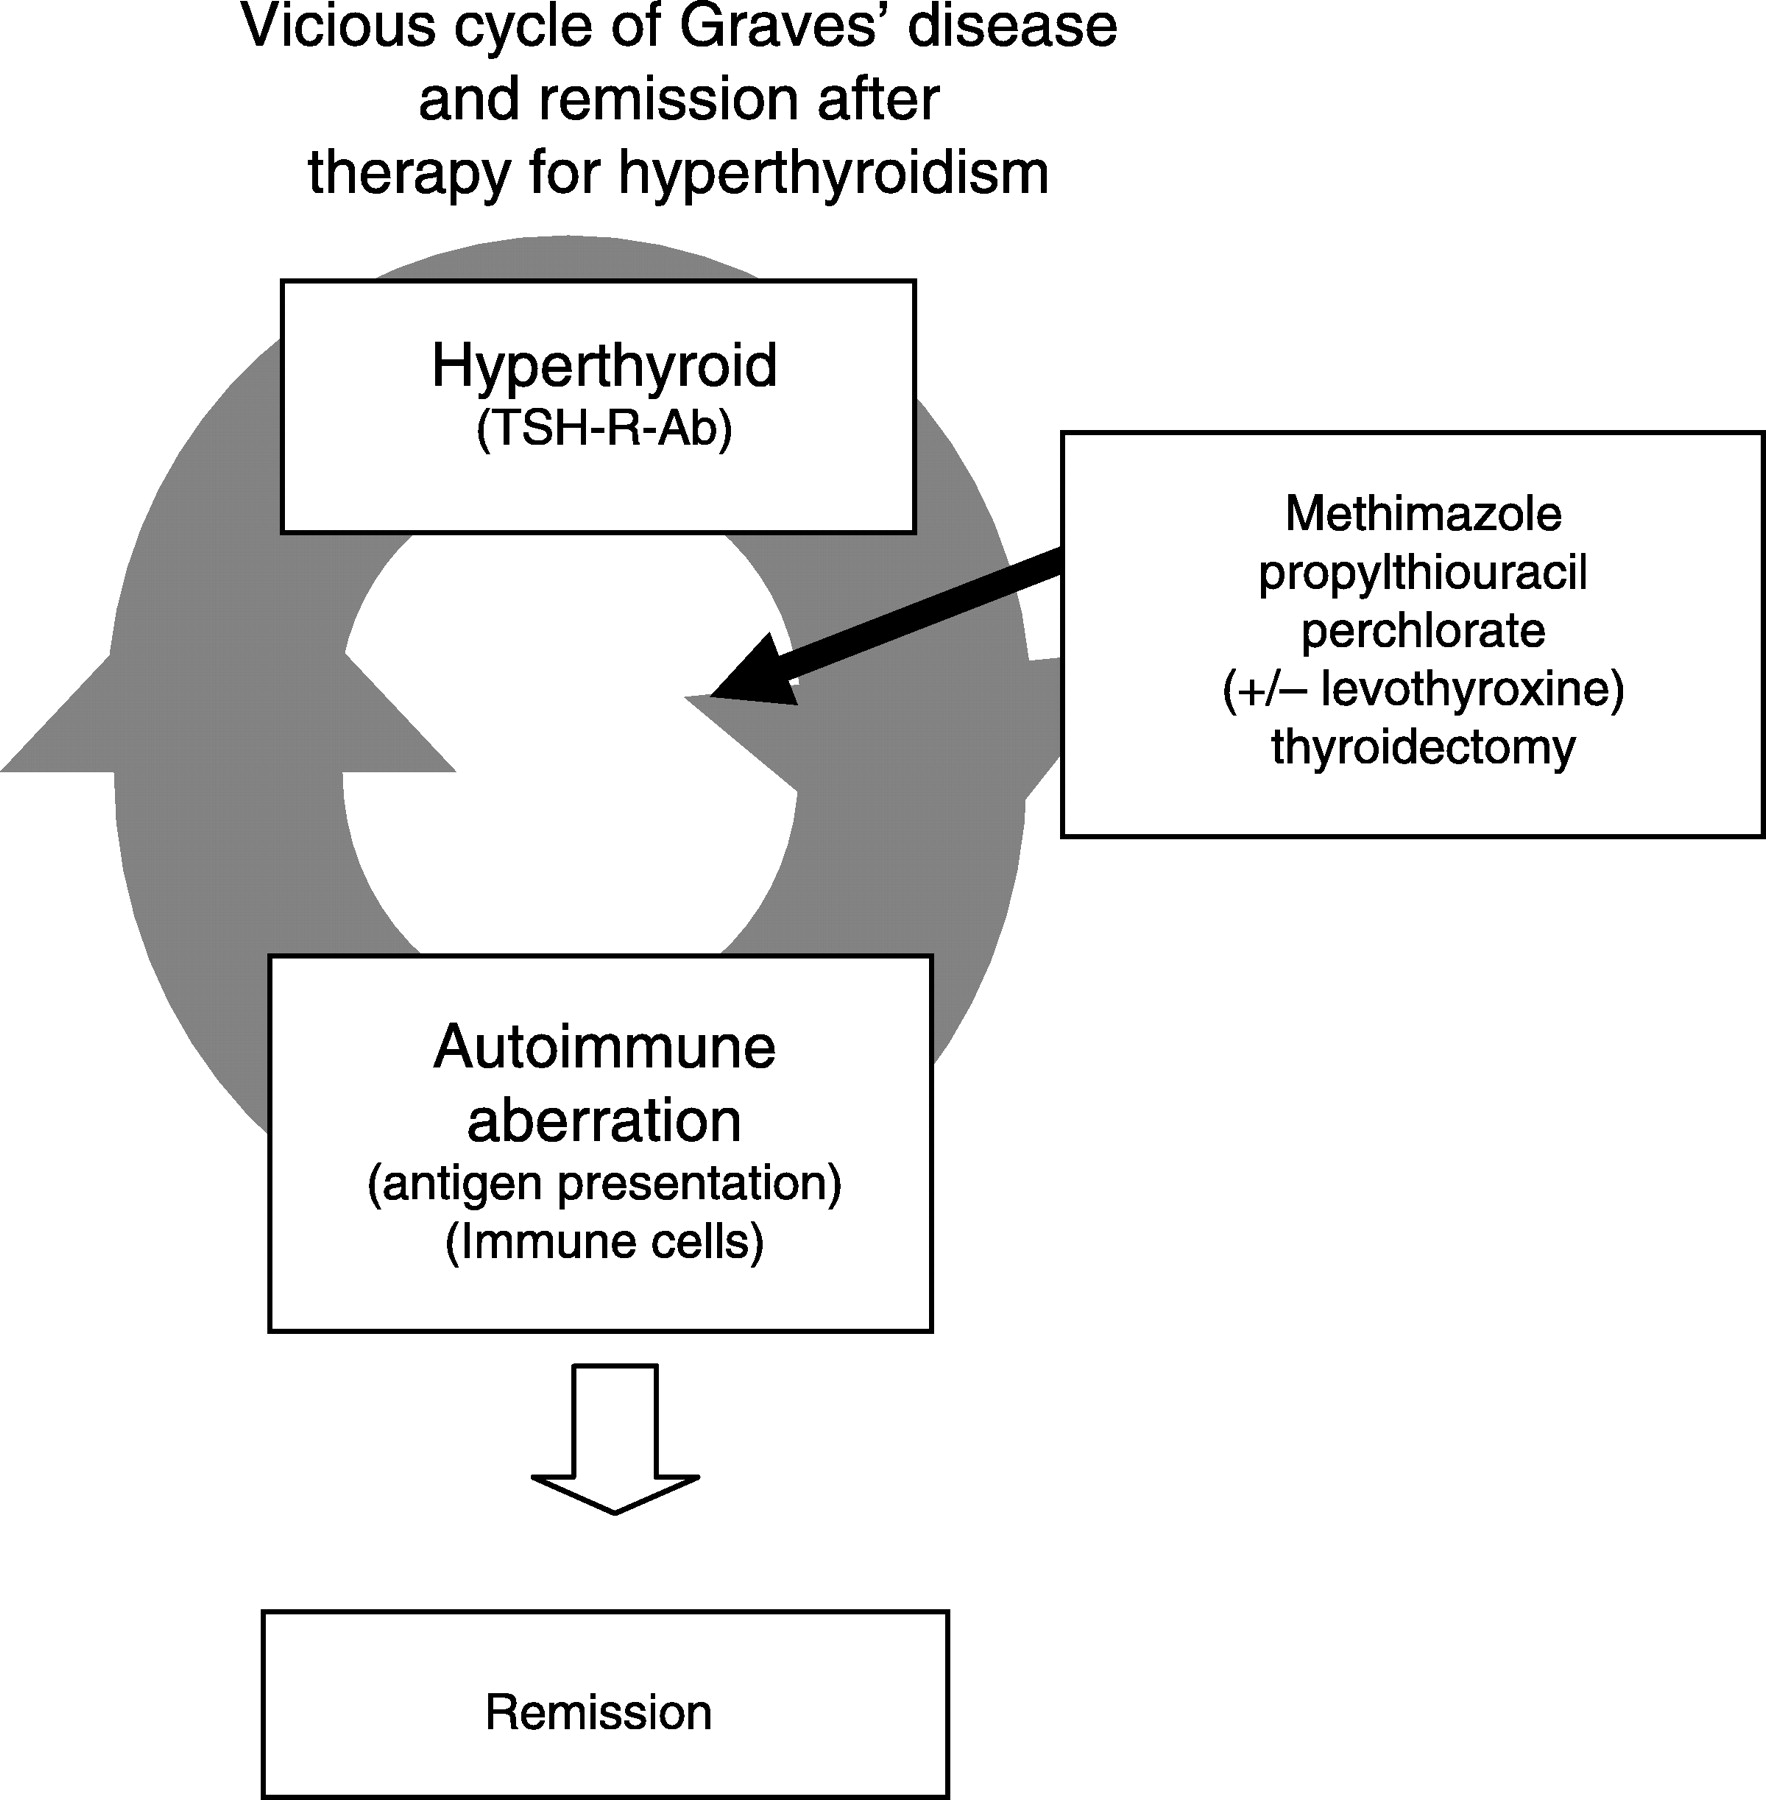 Remission Of Graves Disease During Anti Thyroid Drug Therapy Time To Reconsider The Mechanism In European Journal Of Endocrinology Volume 155 Issue 6 2006